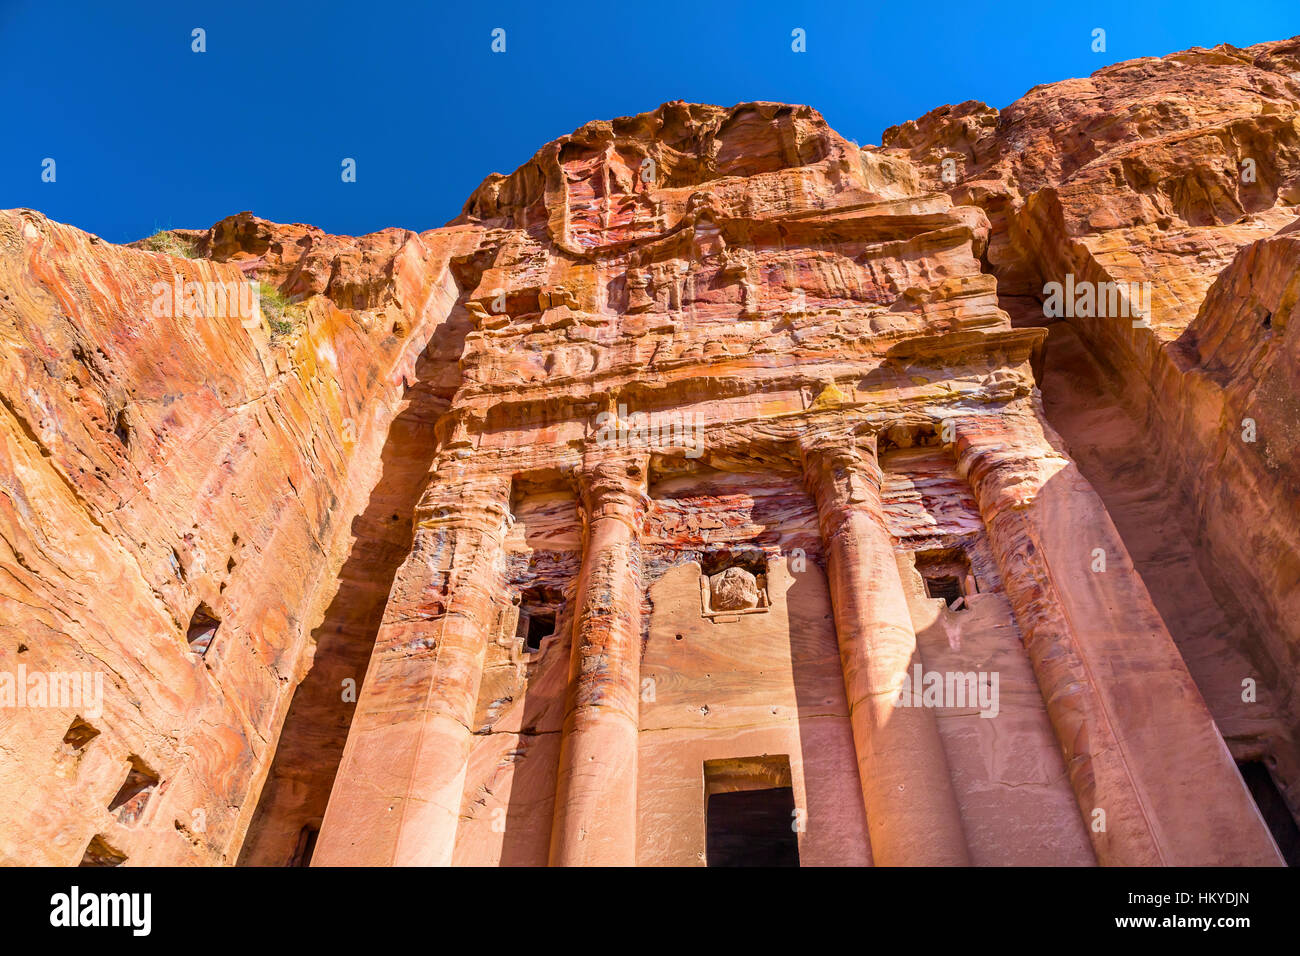 Royal Rock Tomb Arch Petra Jordan.  Built by the Nabataens in 200 BC to 400 AD.  Inside the Tombs, the red, orange, Stock Photo